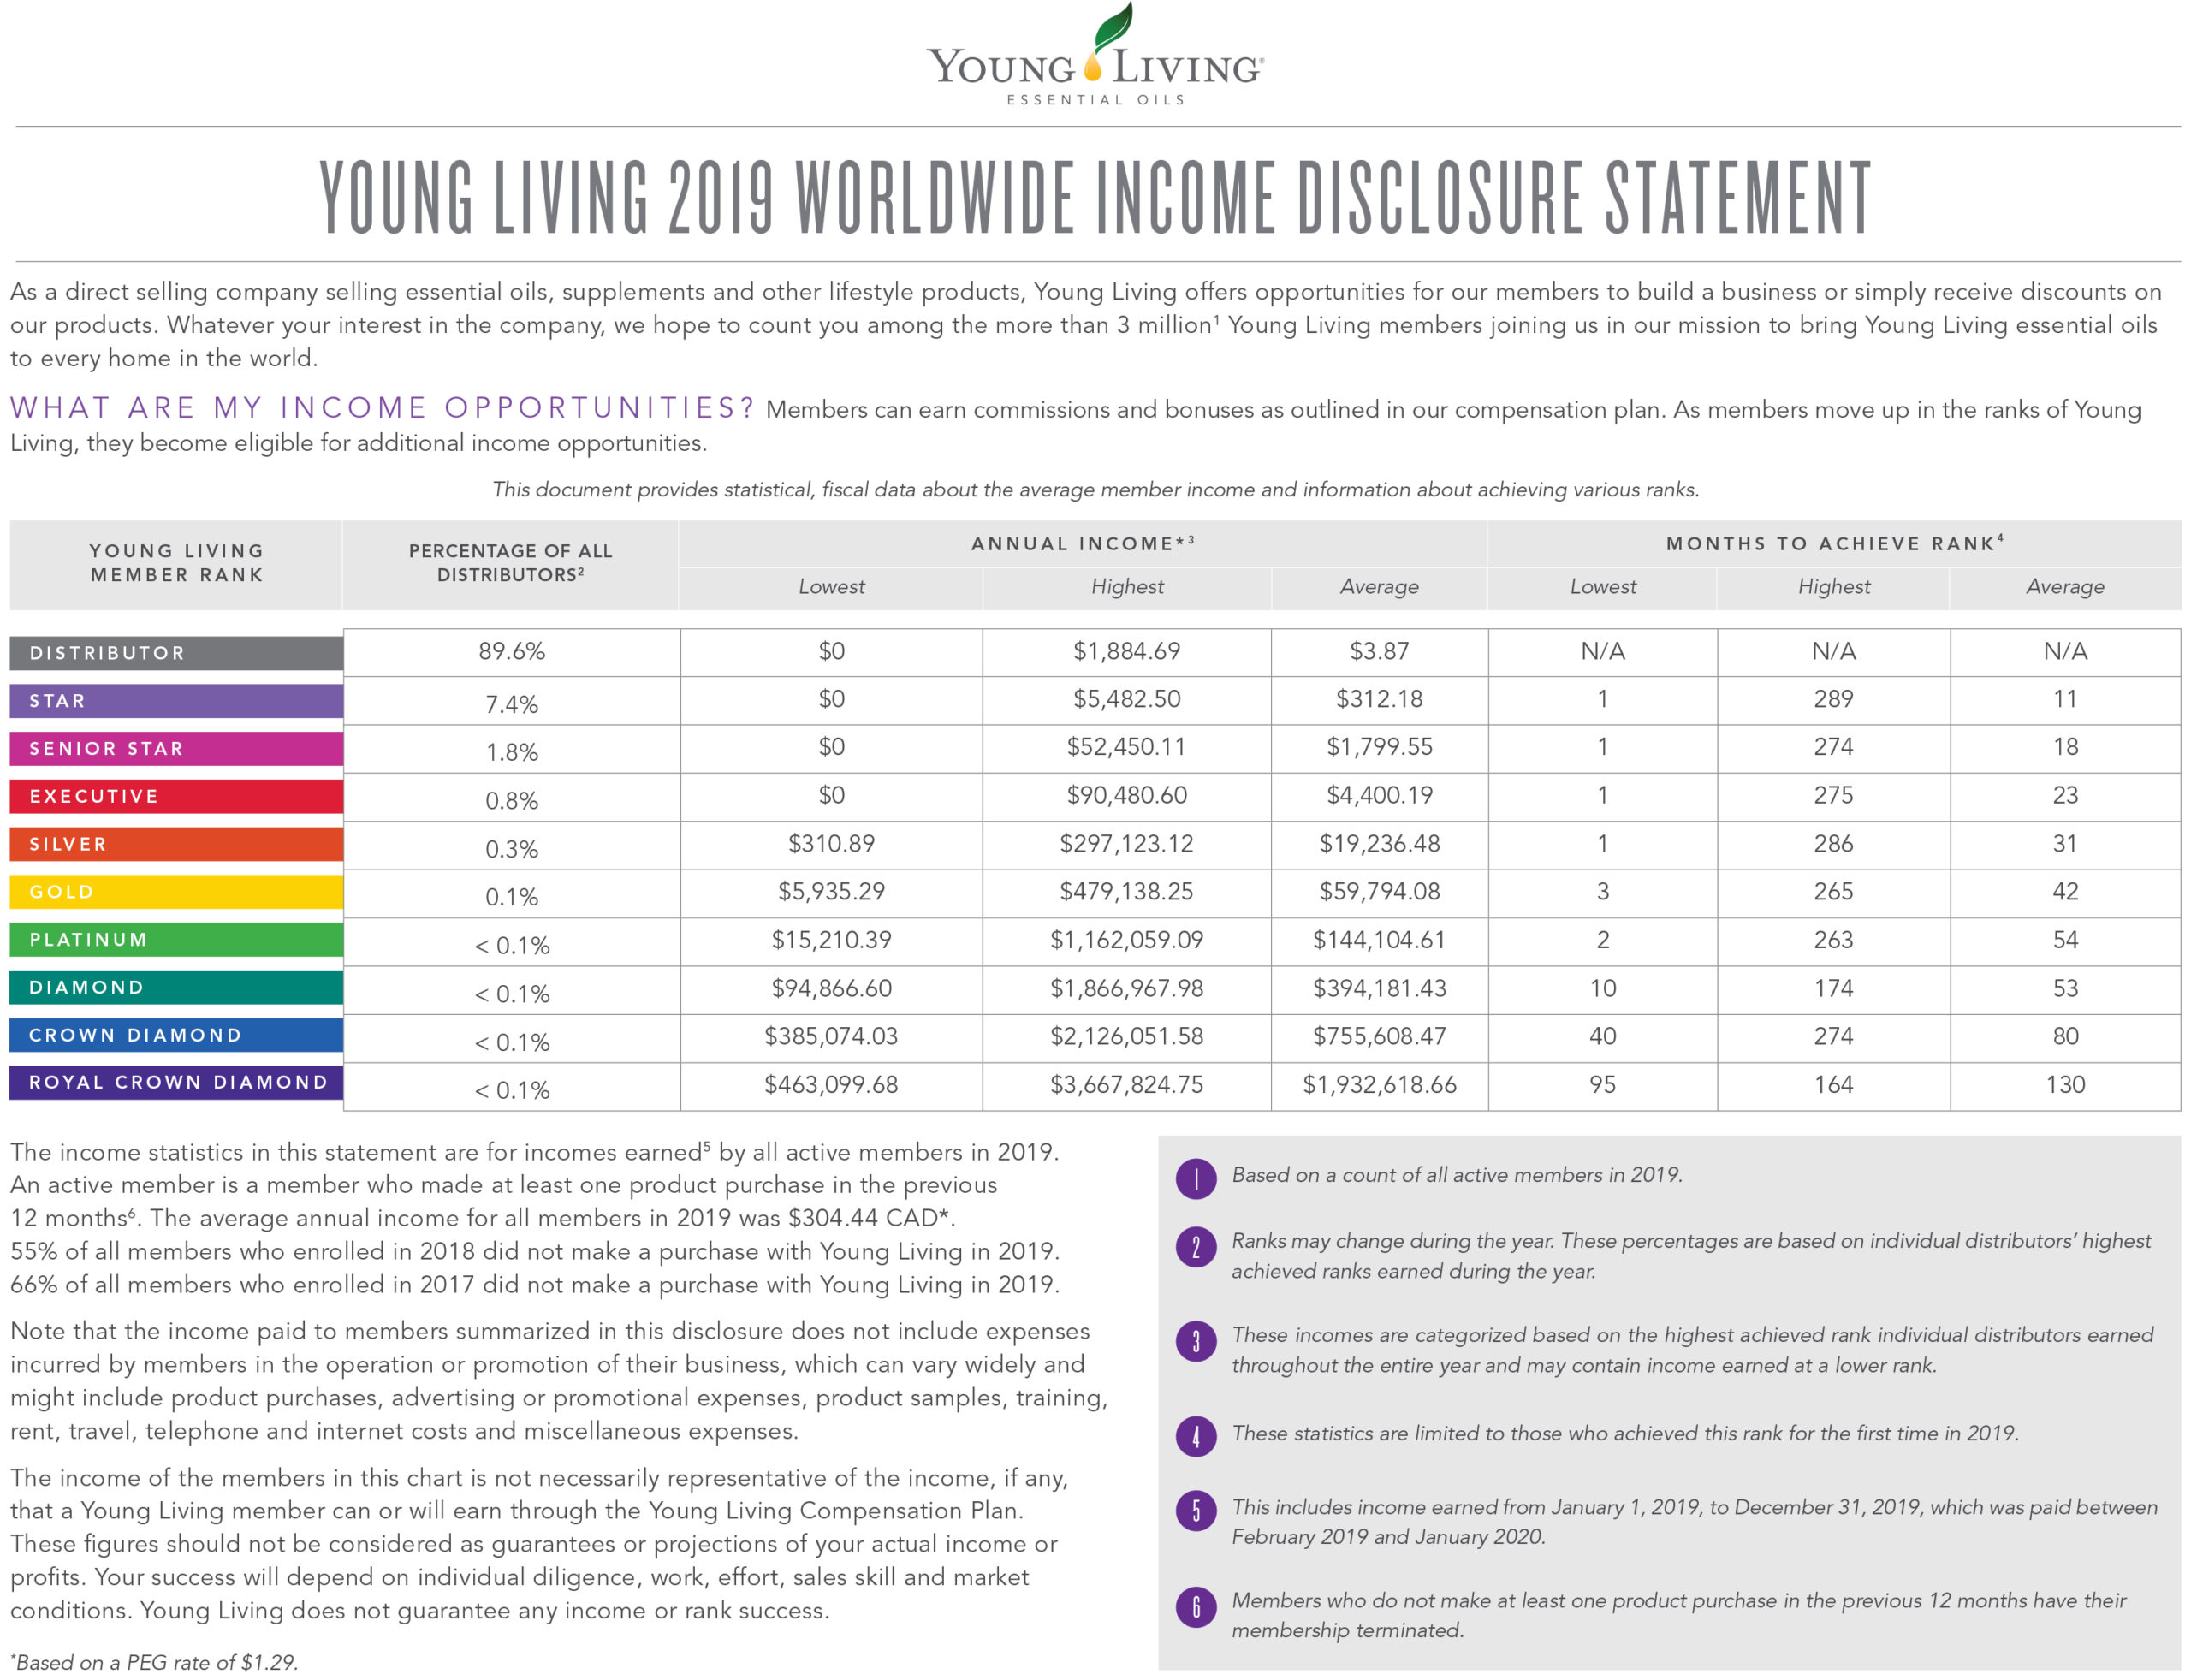 Young Living's Income Disclosure Statement from 2019